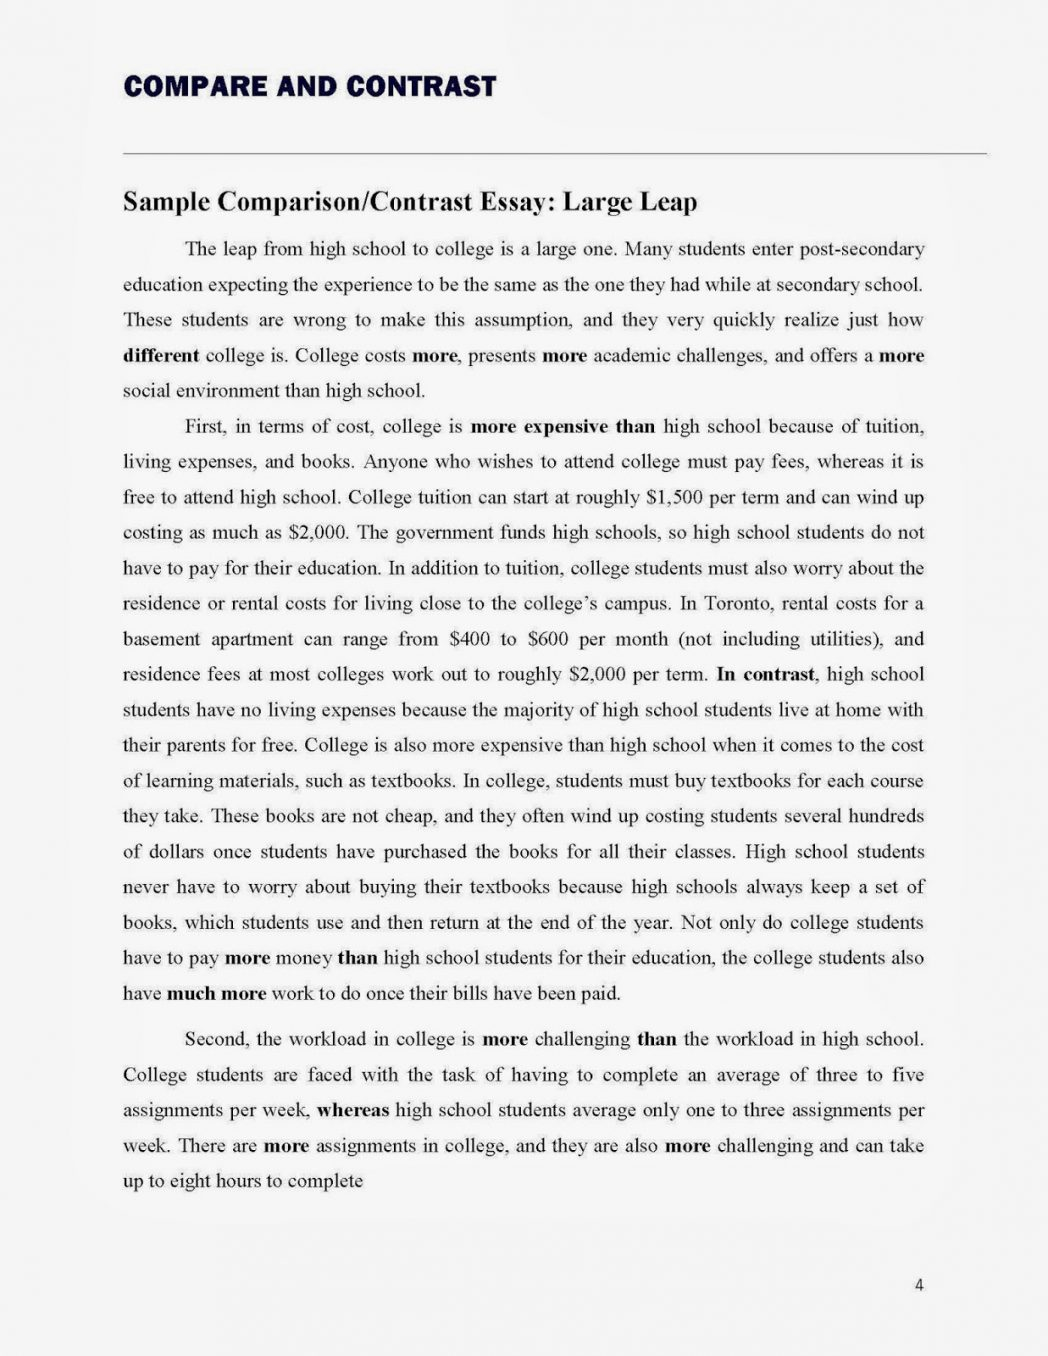 017 Comparison Essay Topic Compare Contrast Prompts College English T Level Topics Composition Samples For Students Pdfamples Argumentative Persuasive Freshman 1048x1356 Incredible Thesis Statement Toefl High School Full